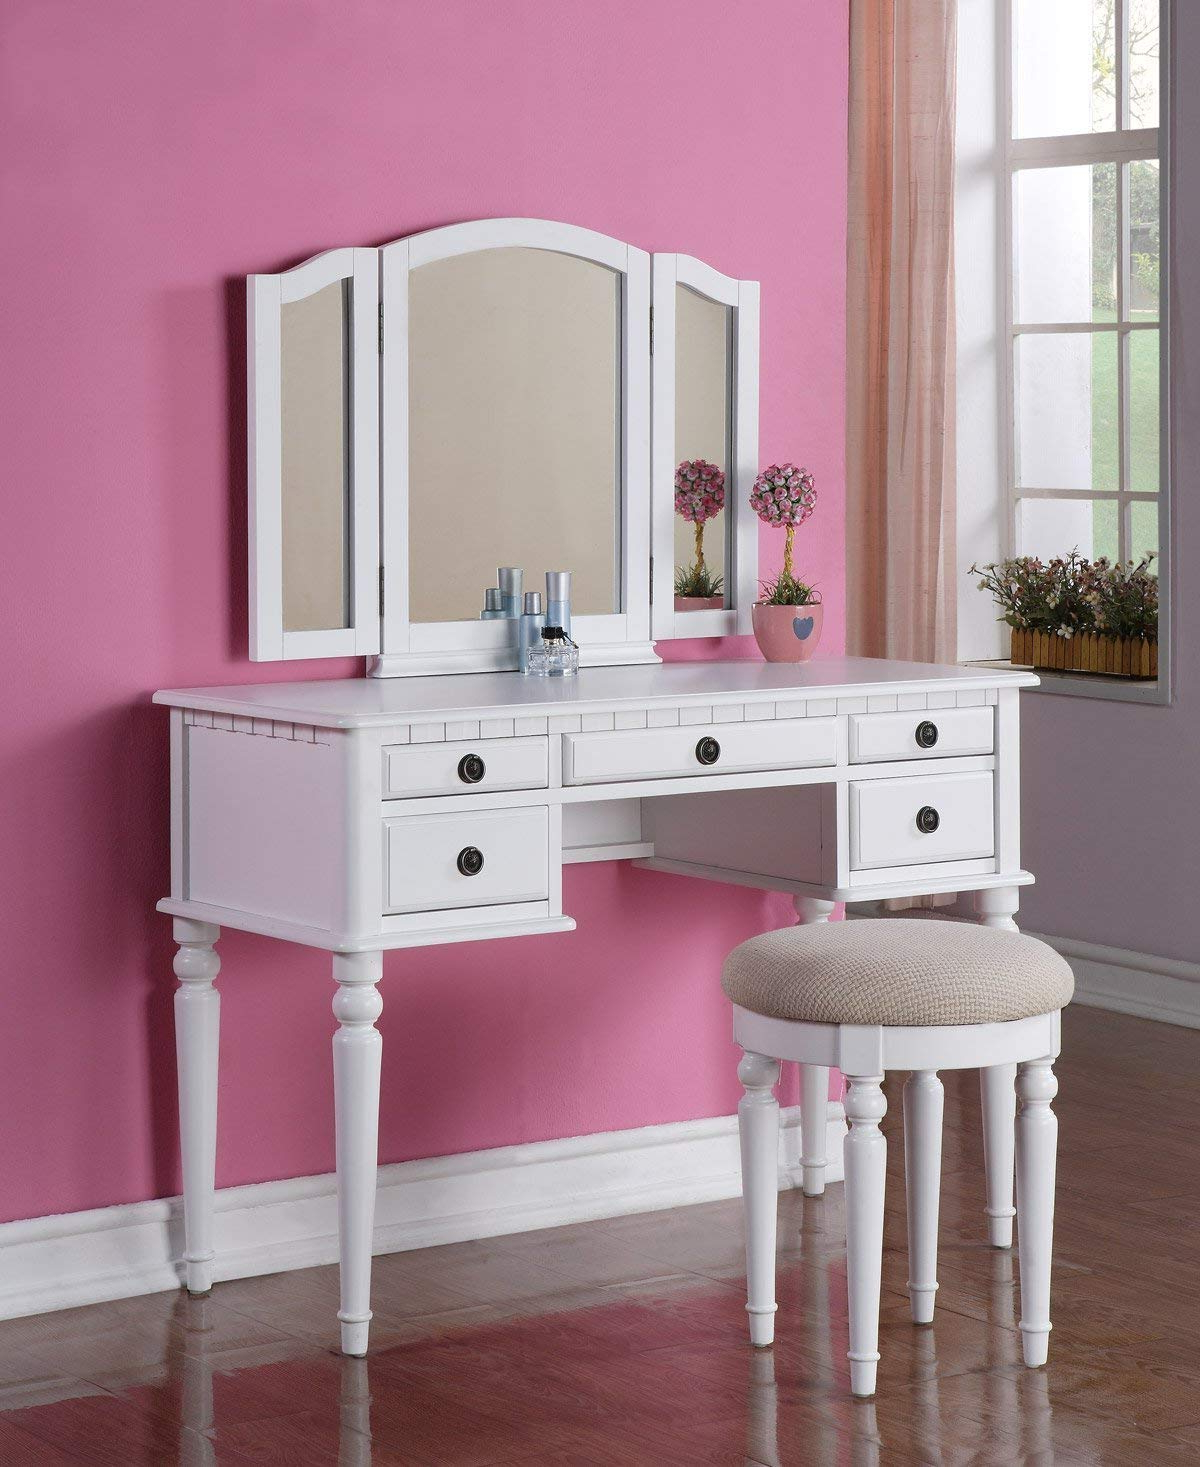 [%Review]Bobkona F4072 St. Croix Collection Vanity Set With Stool Intended For 2020 Saintcroix 3 Piece Dining Sets Saintcroix 3 Piece Dining Sets With Widely Used Review]Bobkona F4072 St. Croix Collection Vanity Set With Stool Recent Saintcroix 3 Piece Dining Sets Throughout Review]Bobkona F4072 St. Croix Collection Vanity Set With Stool Most Recent Review]Bobkona F4072 St (View 1 of 25)